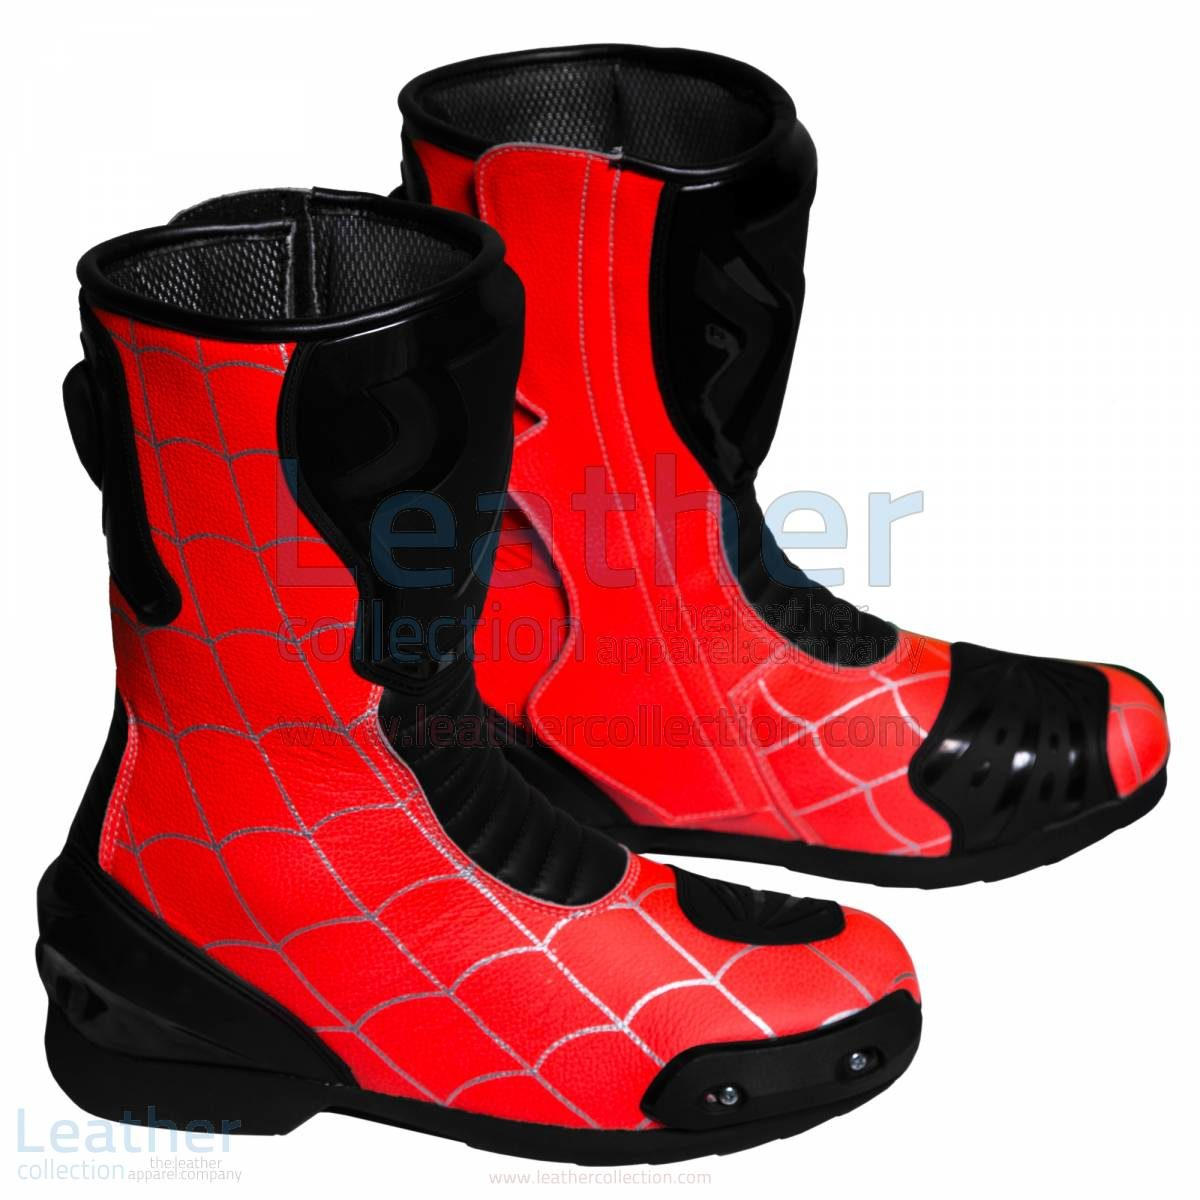 Spiderman Botas de carreras de motos